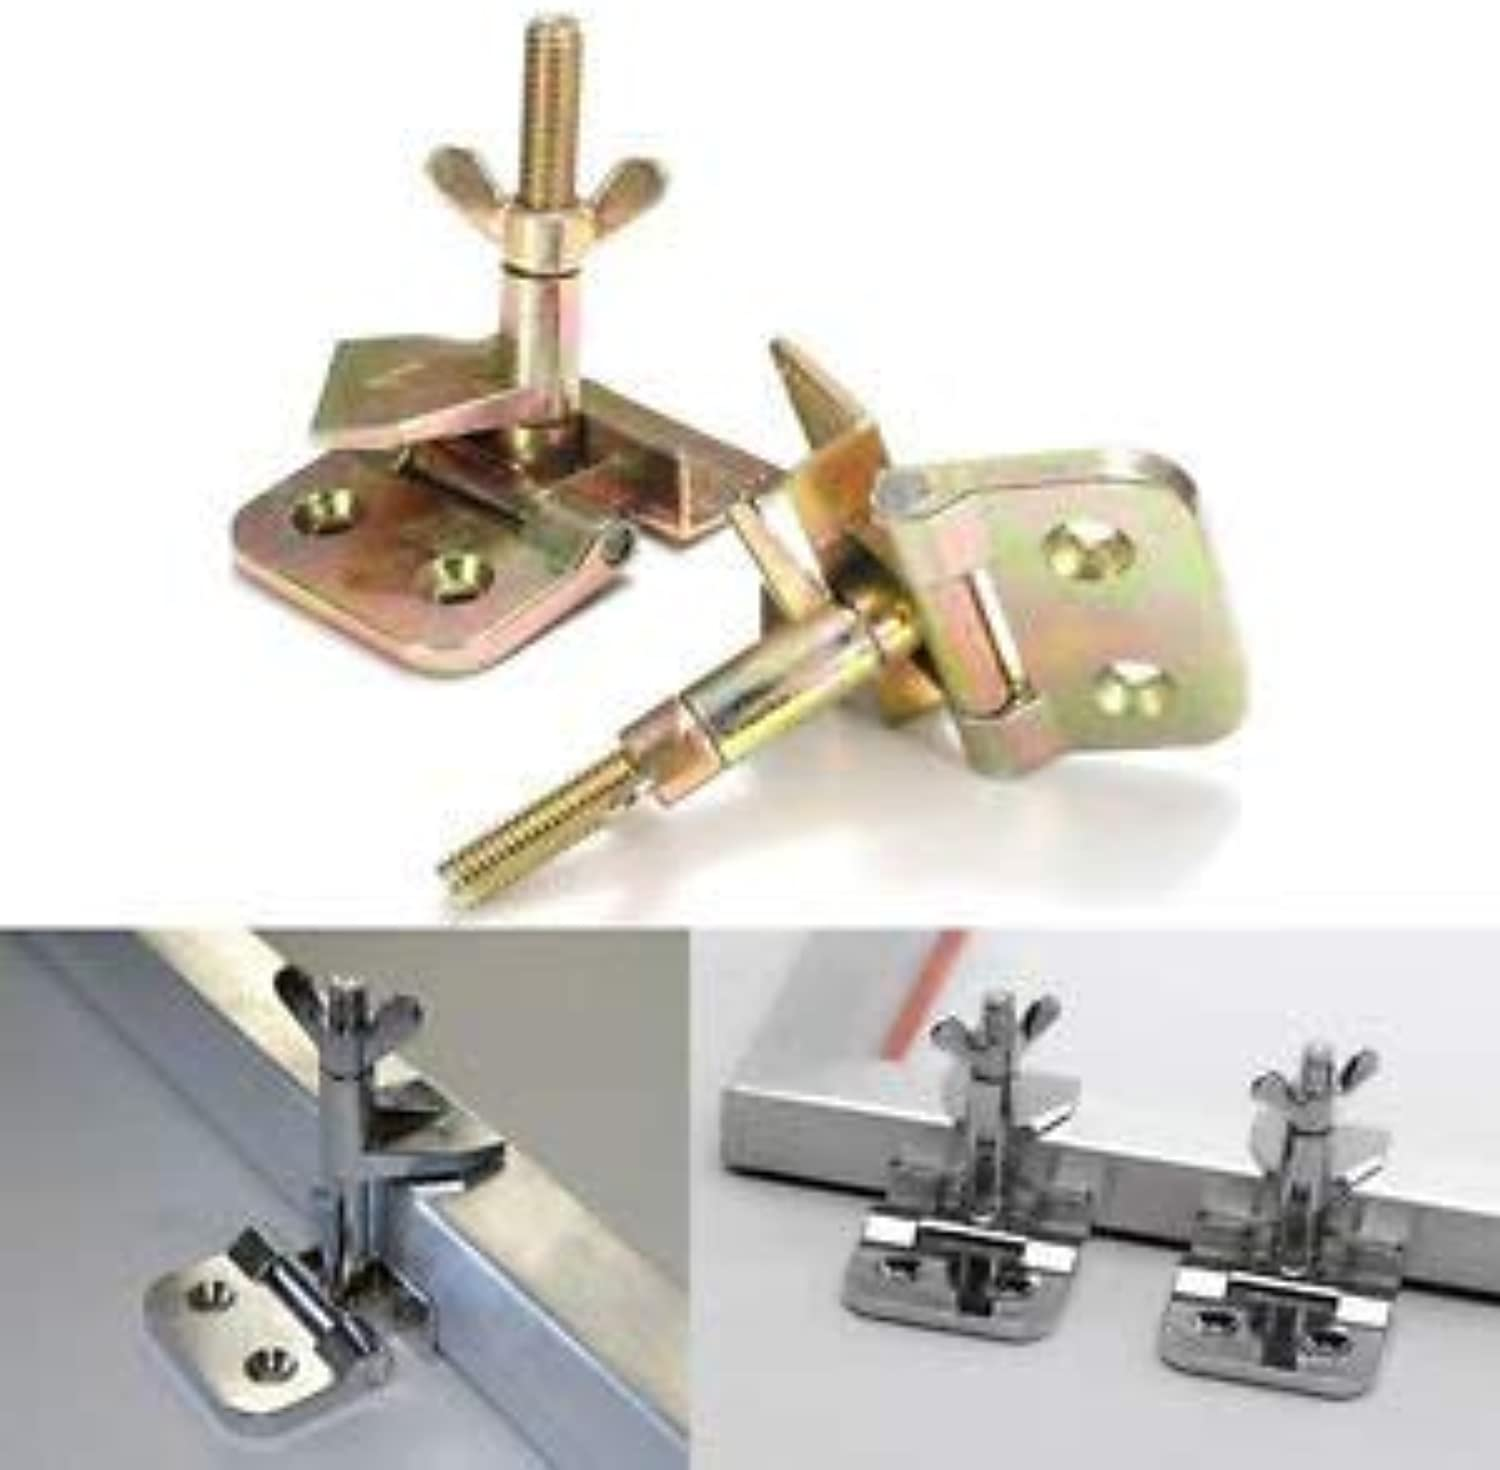 2pcs Silk Screen Printing Hinge Clamp Stainless Steel DIY Hobby Clip Tool